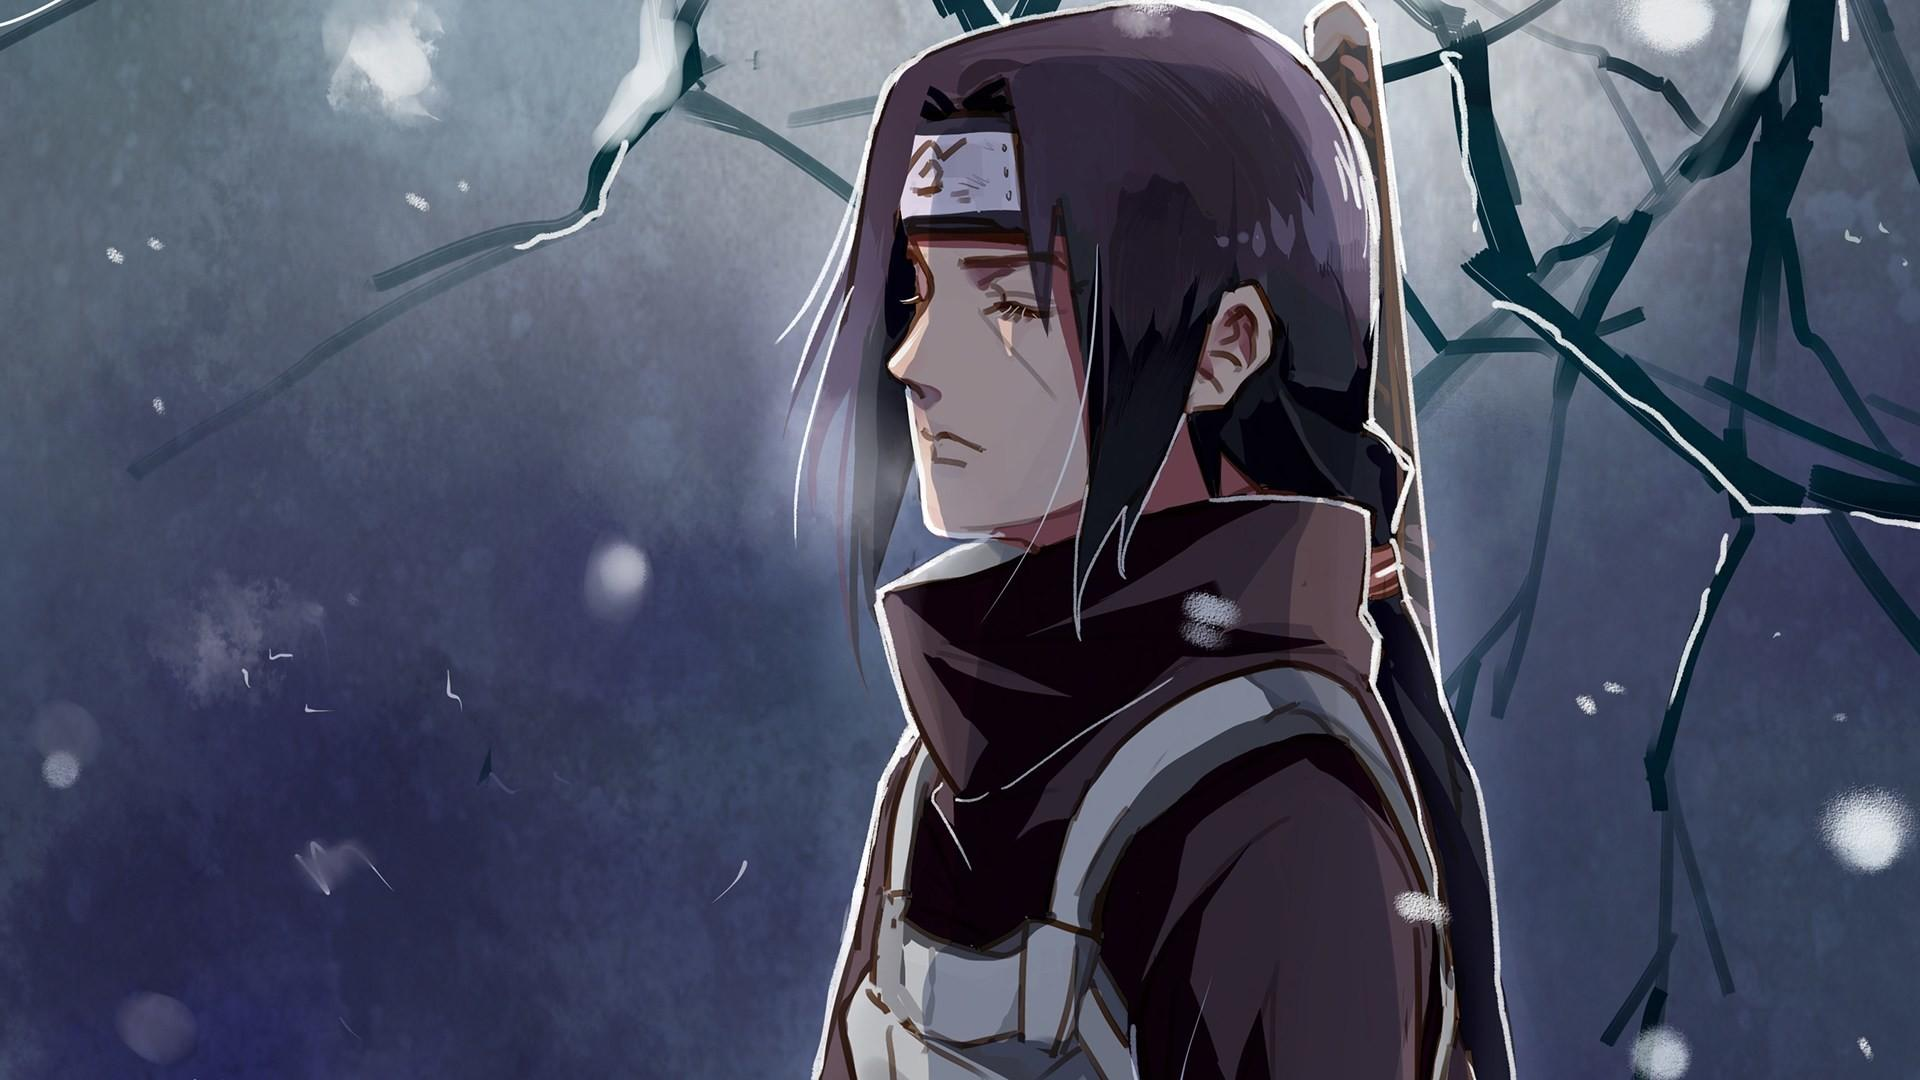 Ps4 Anime Itachi Wallpapers Wallpaper Cave